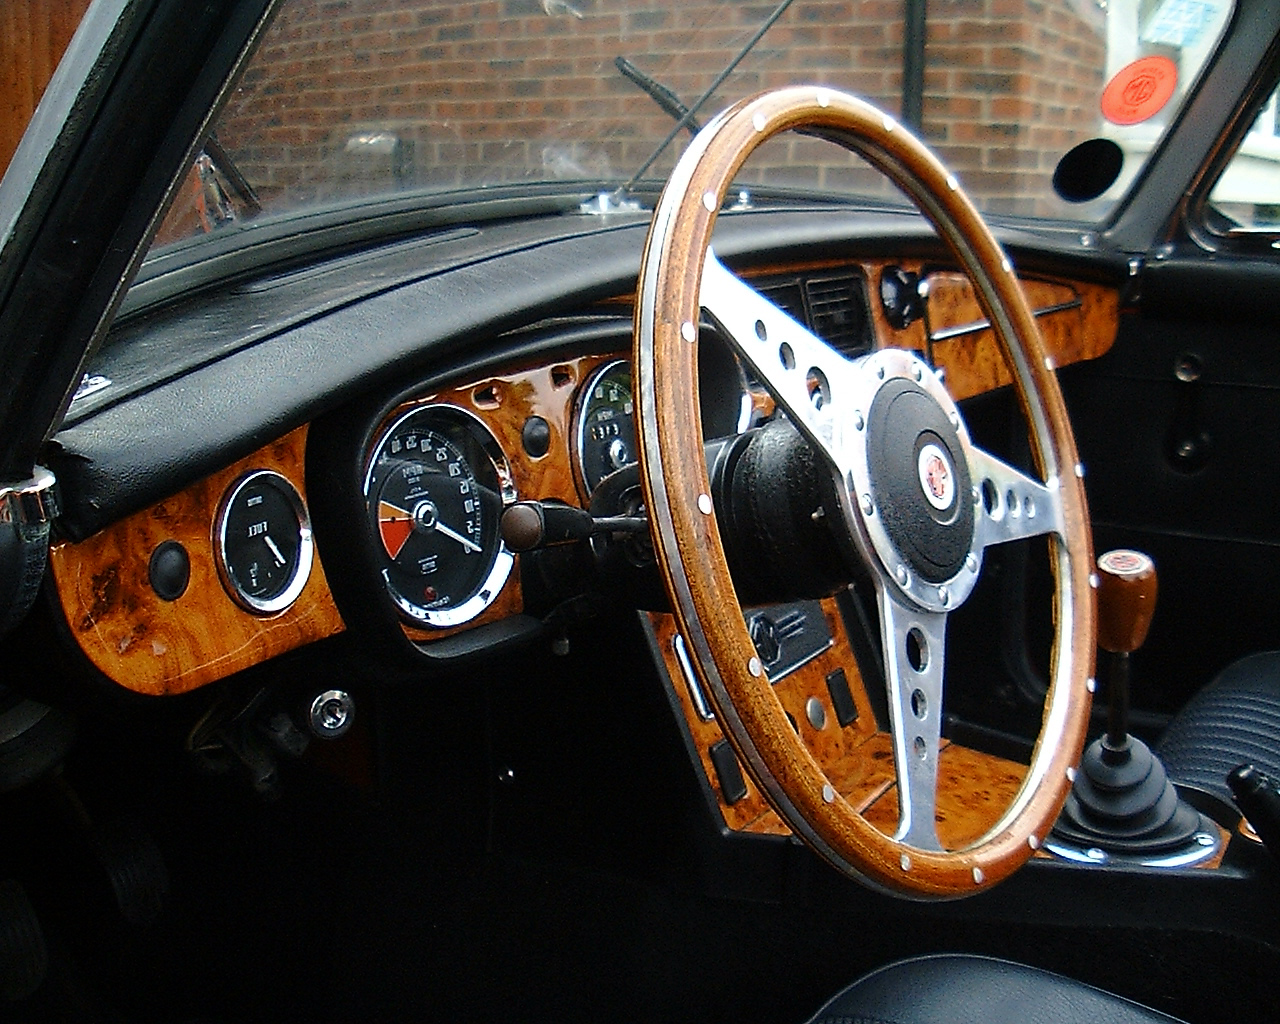 1972 mg midget dashboard